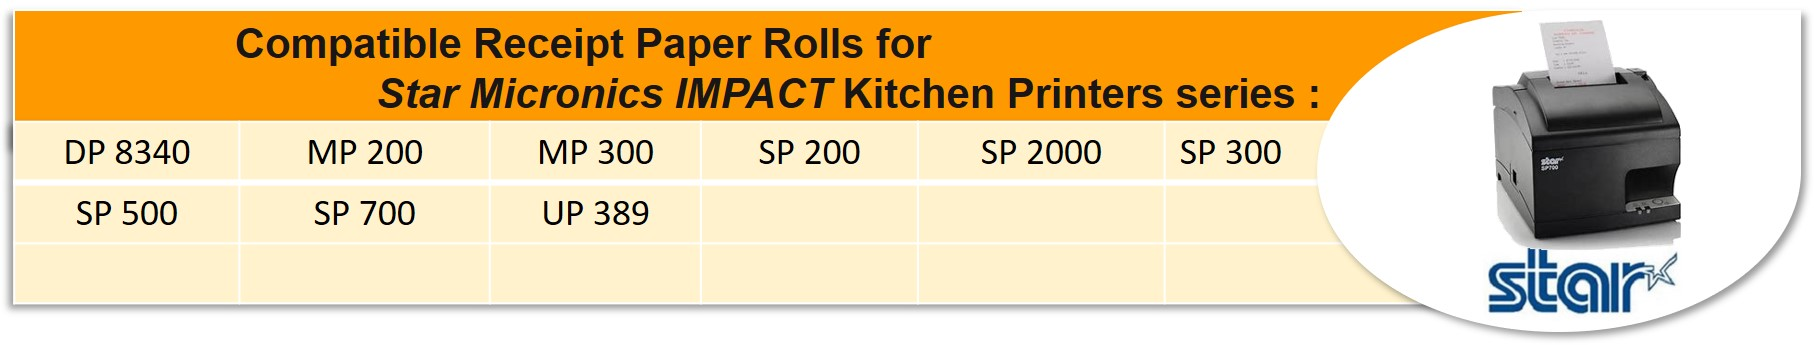 receipt-paper-for-star-kitchen-printer-category.jpg